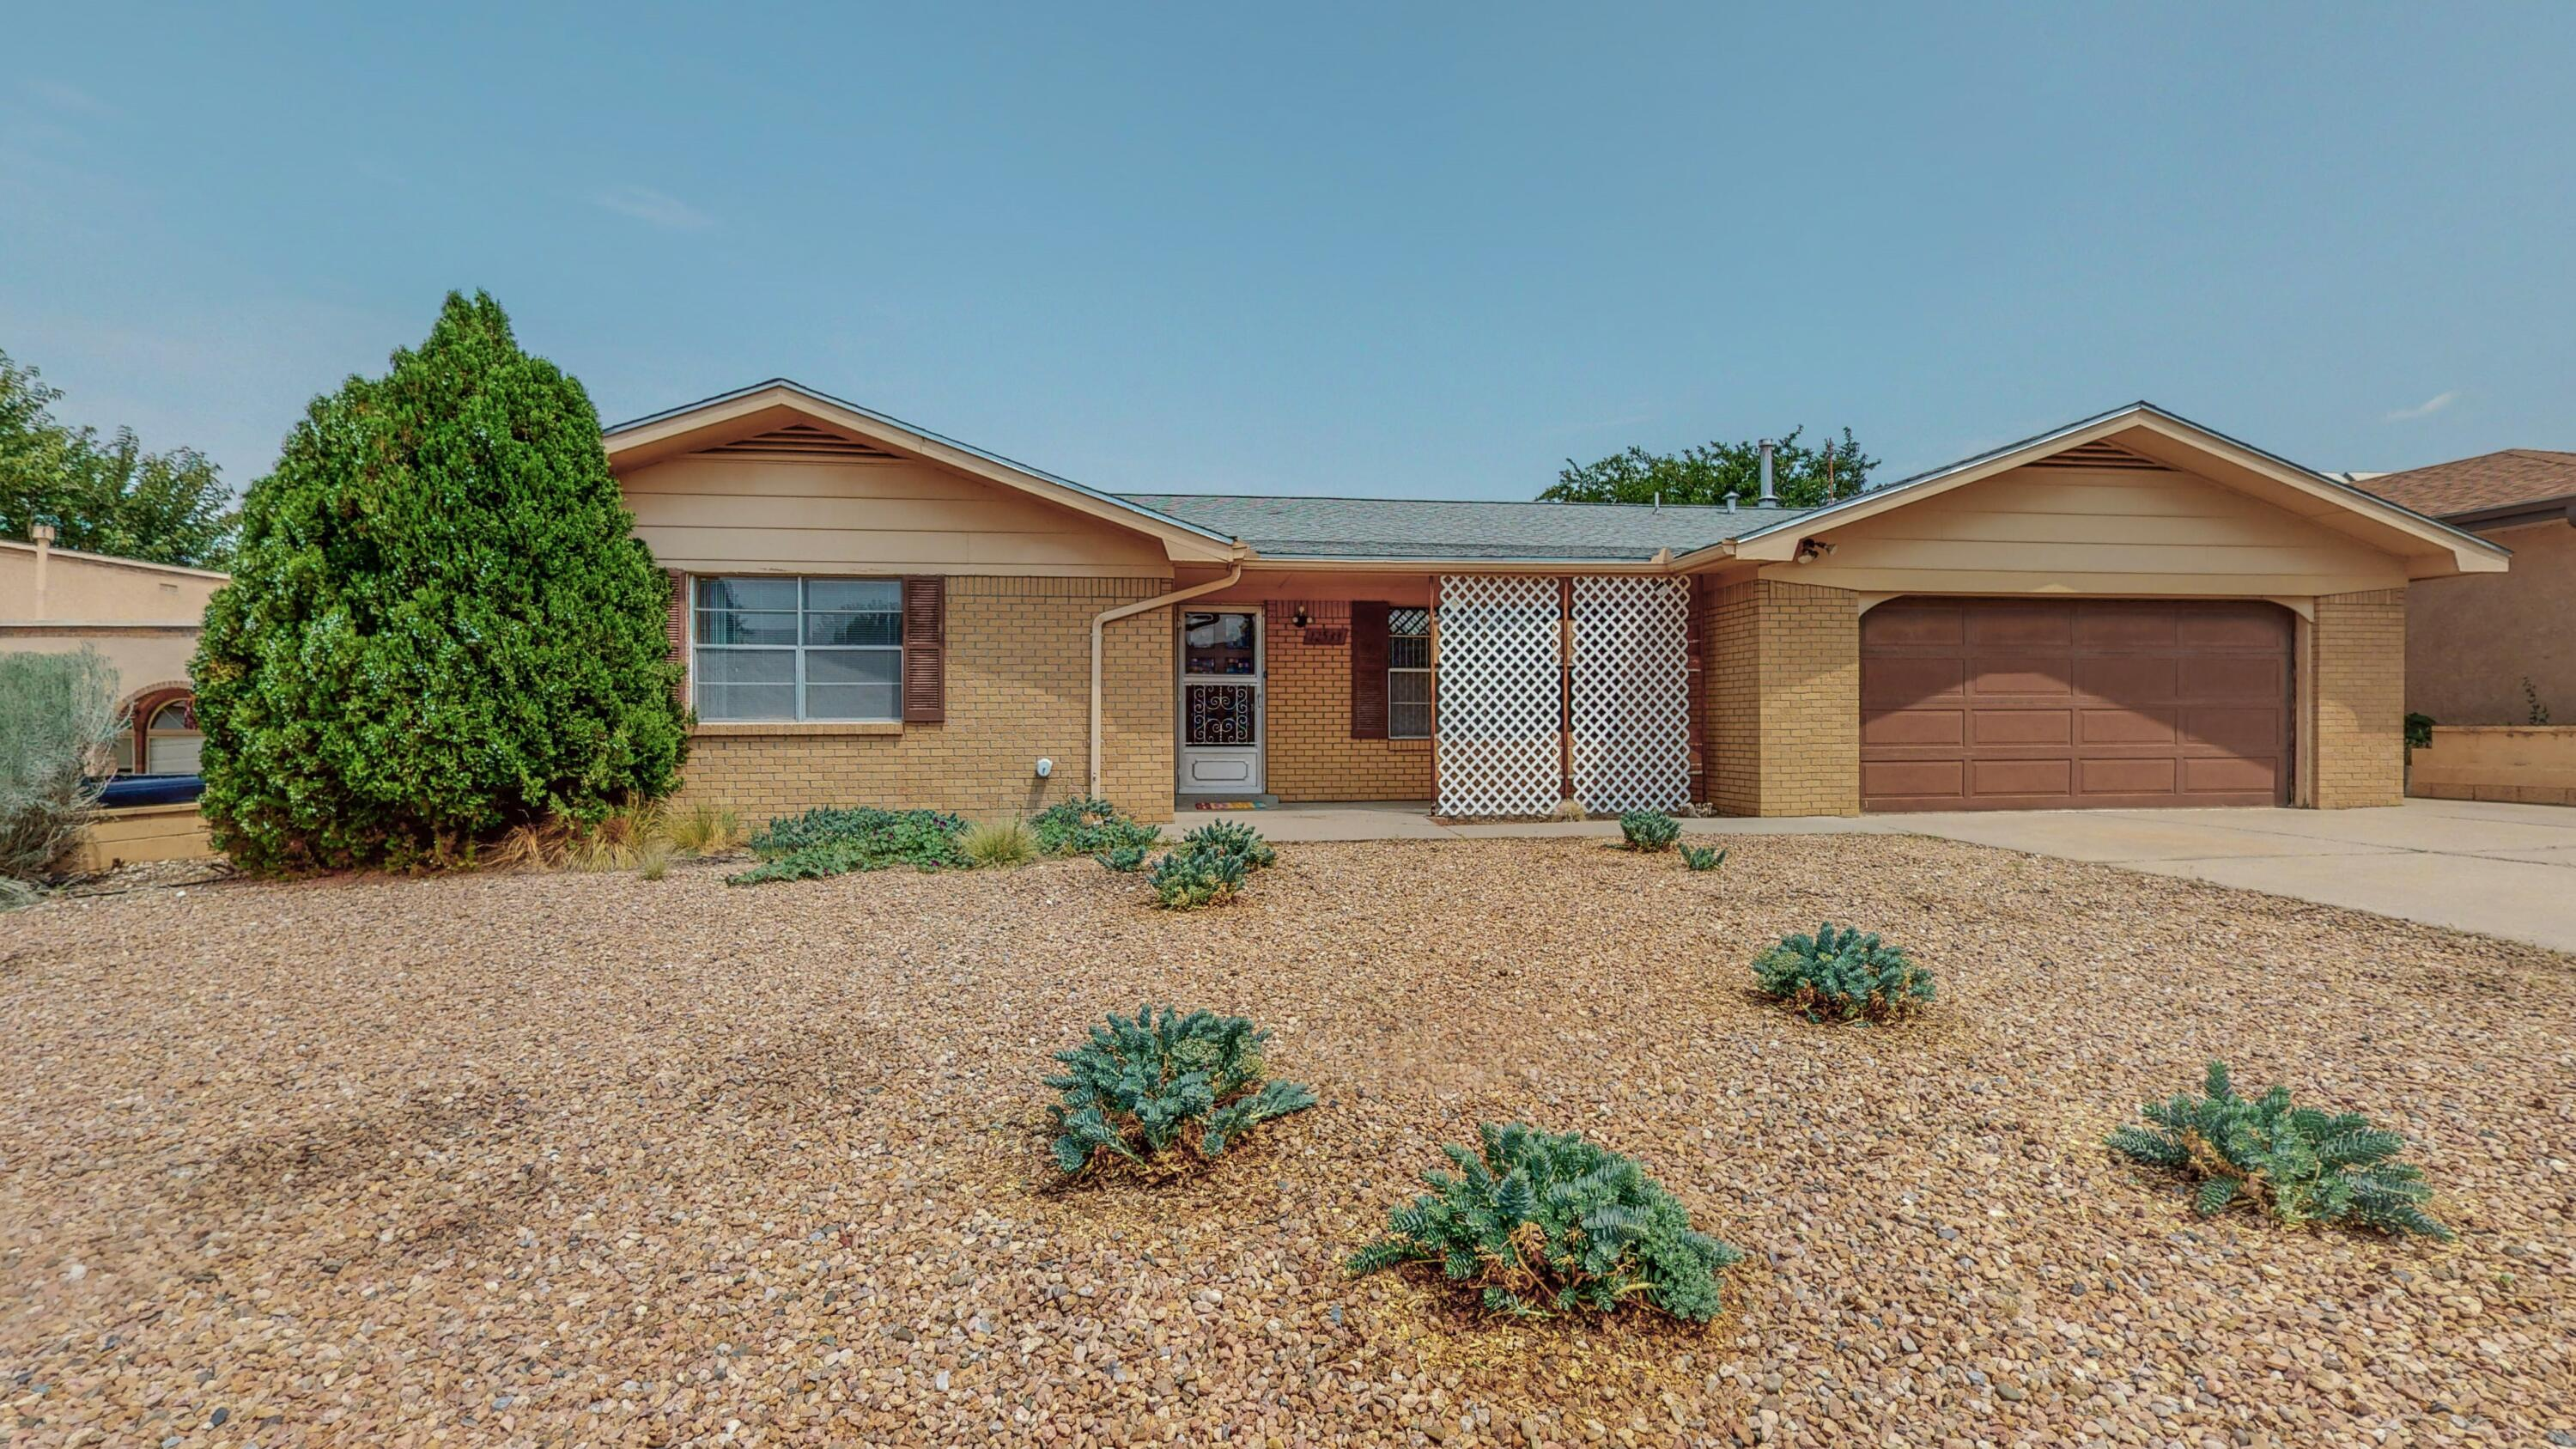 This wonderful home is just waiting for a new owner to come in and make it their own.  There is plenty of natural light with a wonderful flow and two living areas. The kitchen is large and features a breakfast nook overlooking the large backyard.  From the covered patio you have a view of the mountains and a clean slate to landscape to your liking. Centrally located and priced to sell - schedule your showing before it is gone!